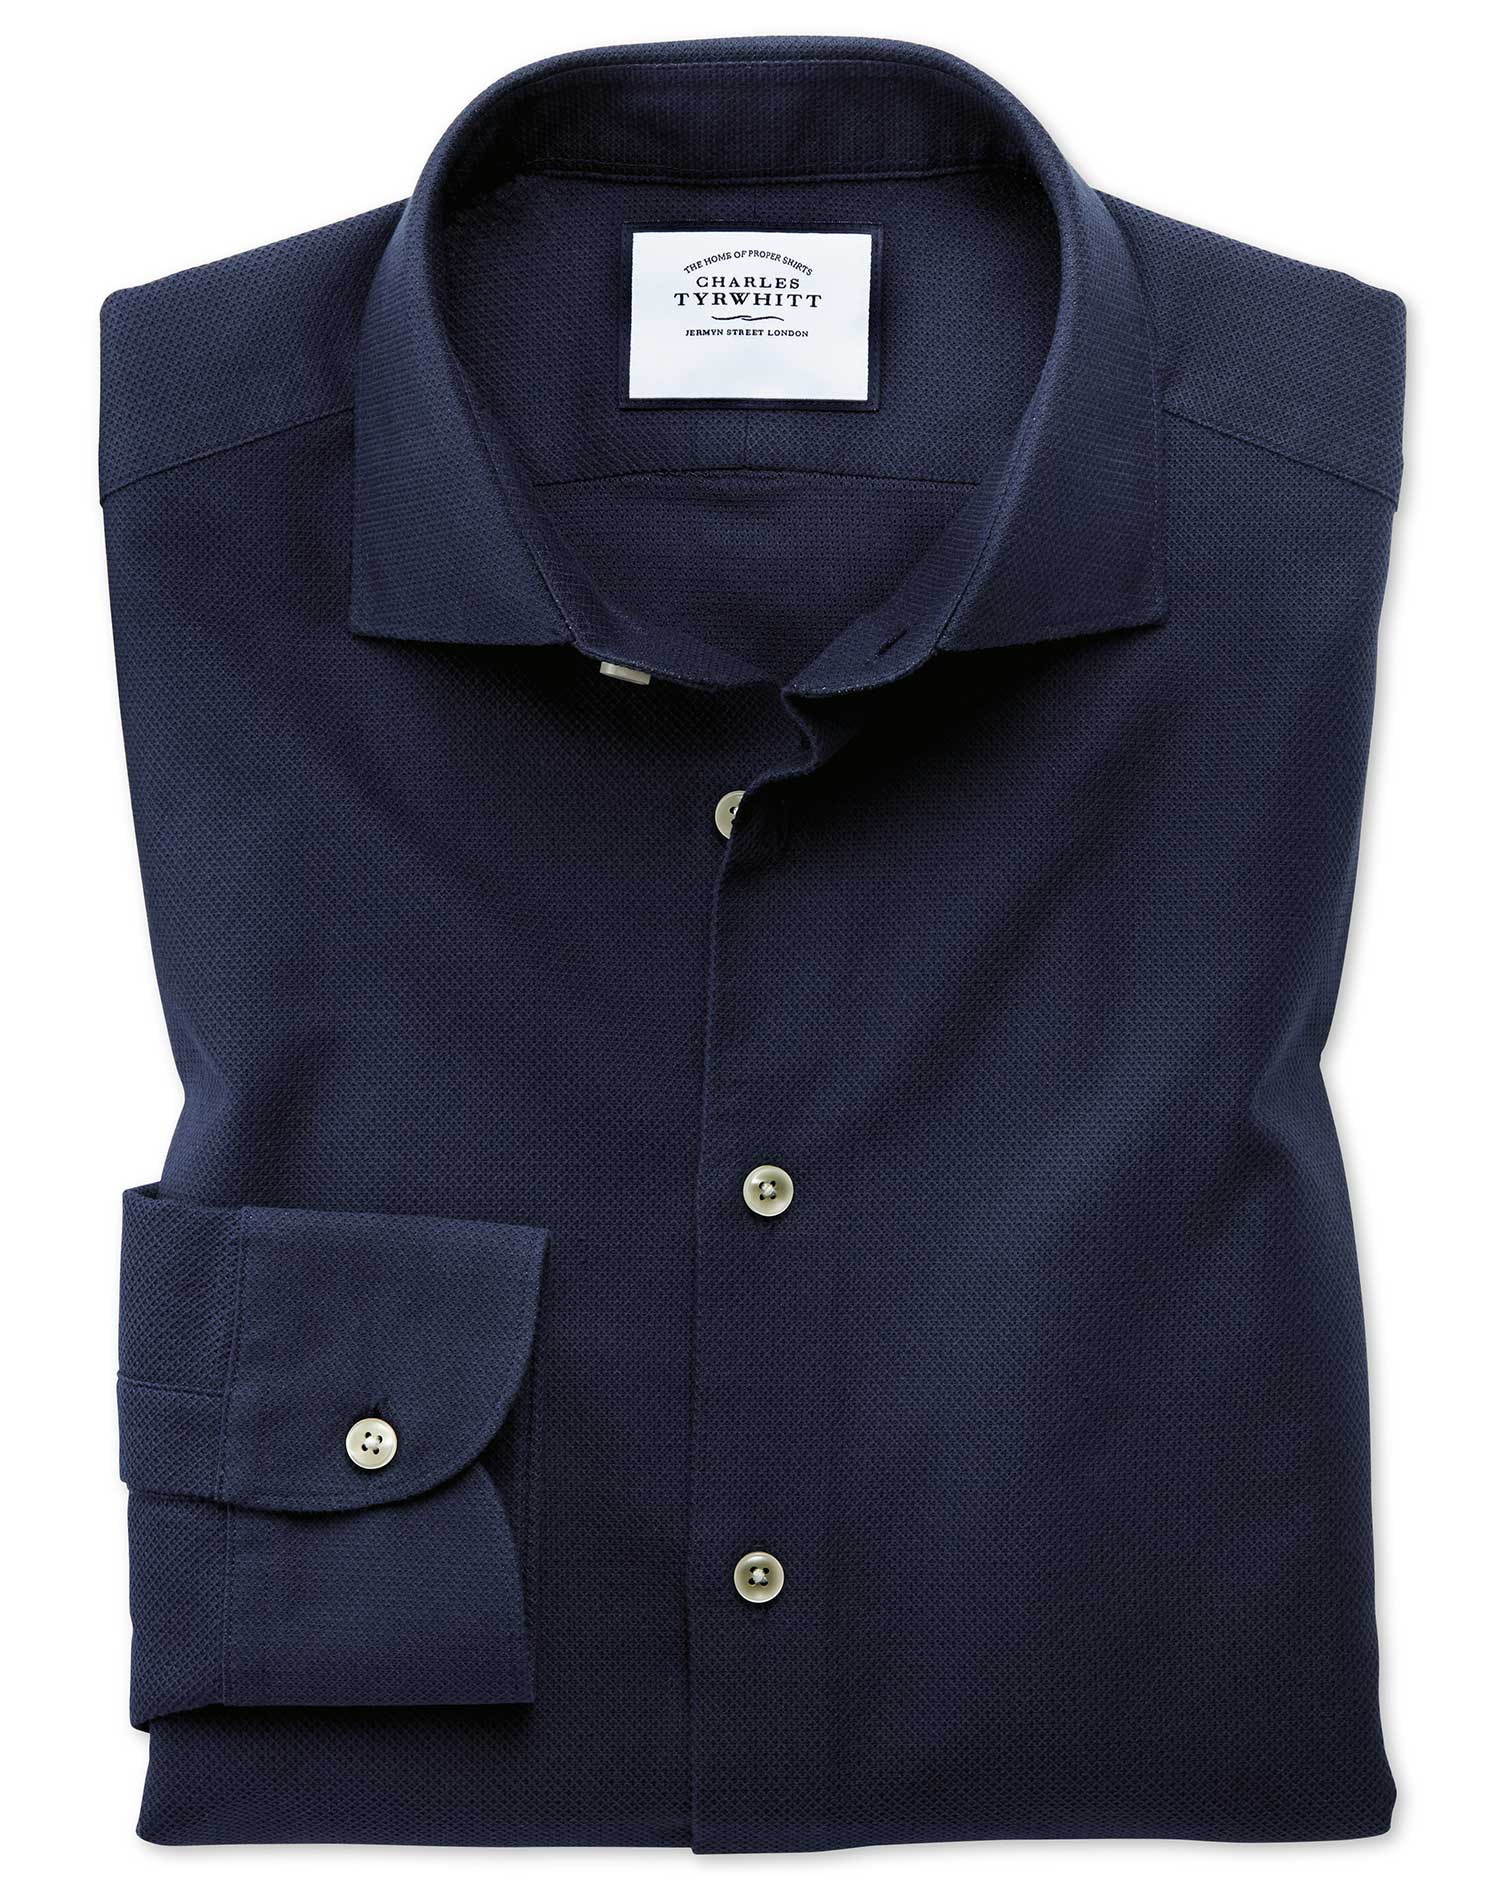 Slim Fit Business Casual Leno Texture Navy Cotton Formal Shirt Single Cuff Size 16/38 by Charles Tyr